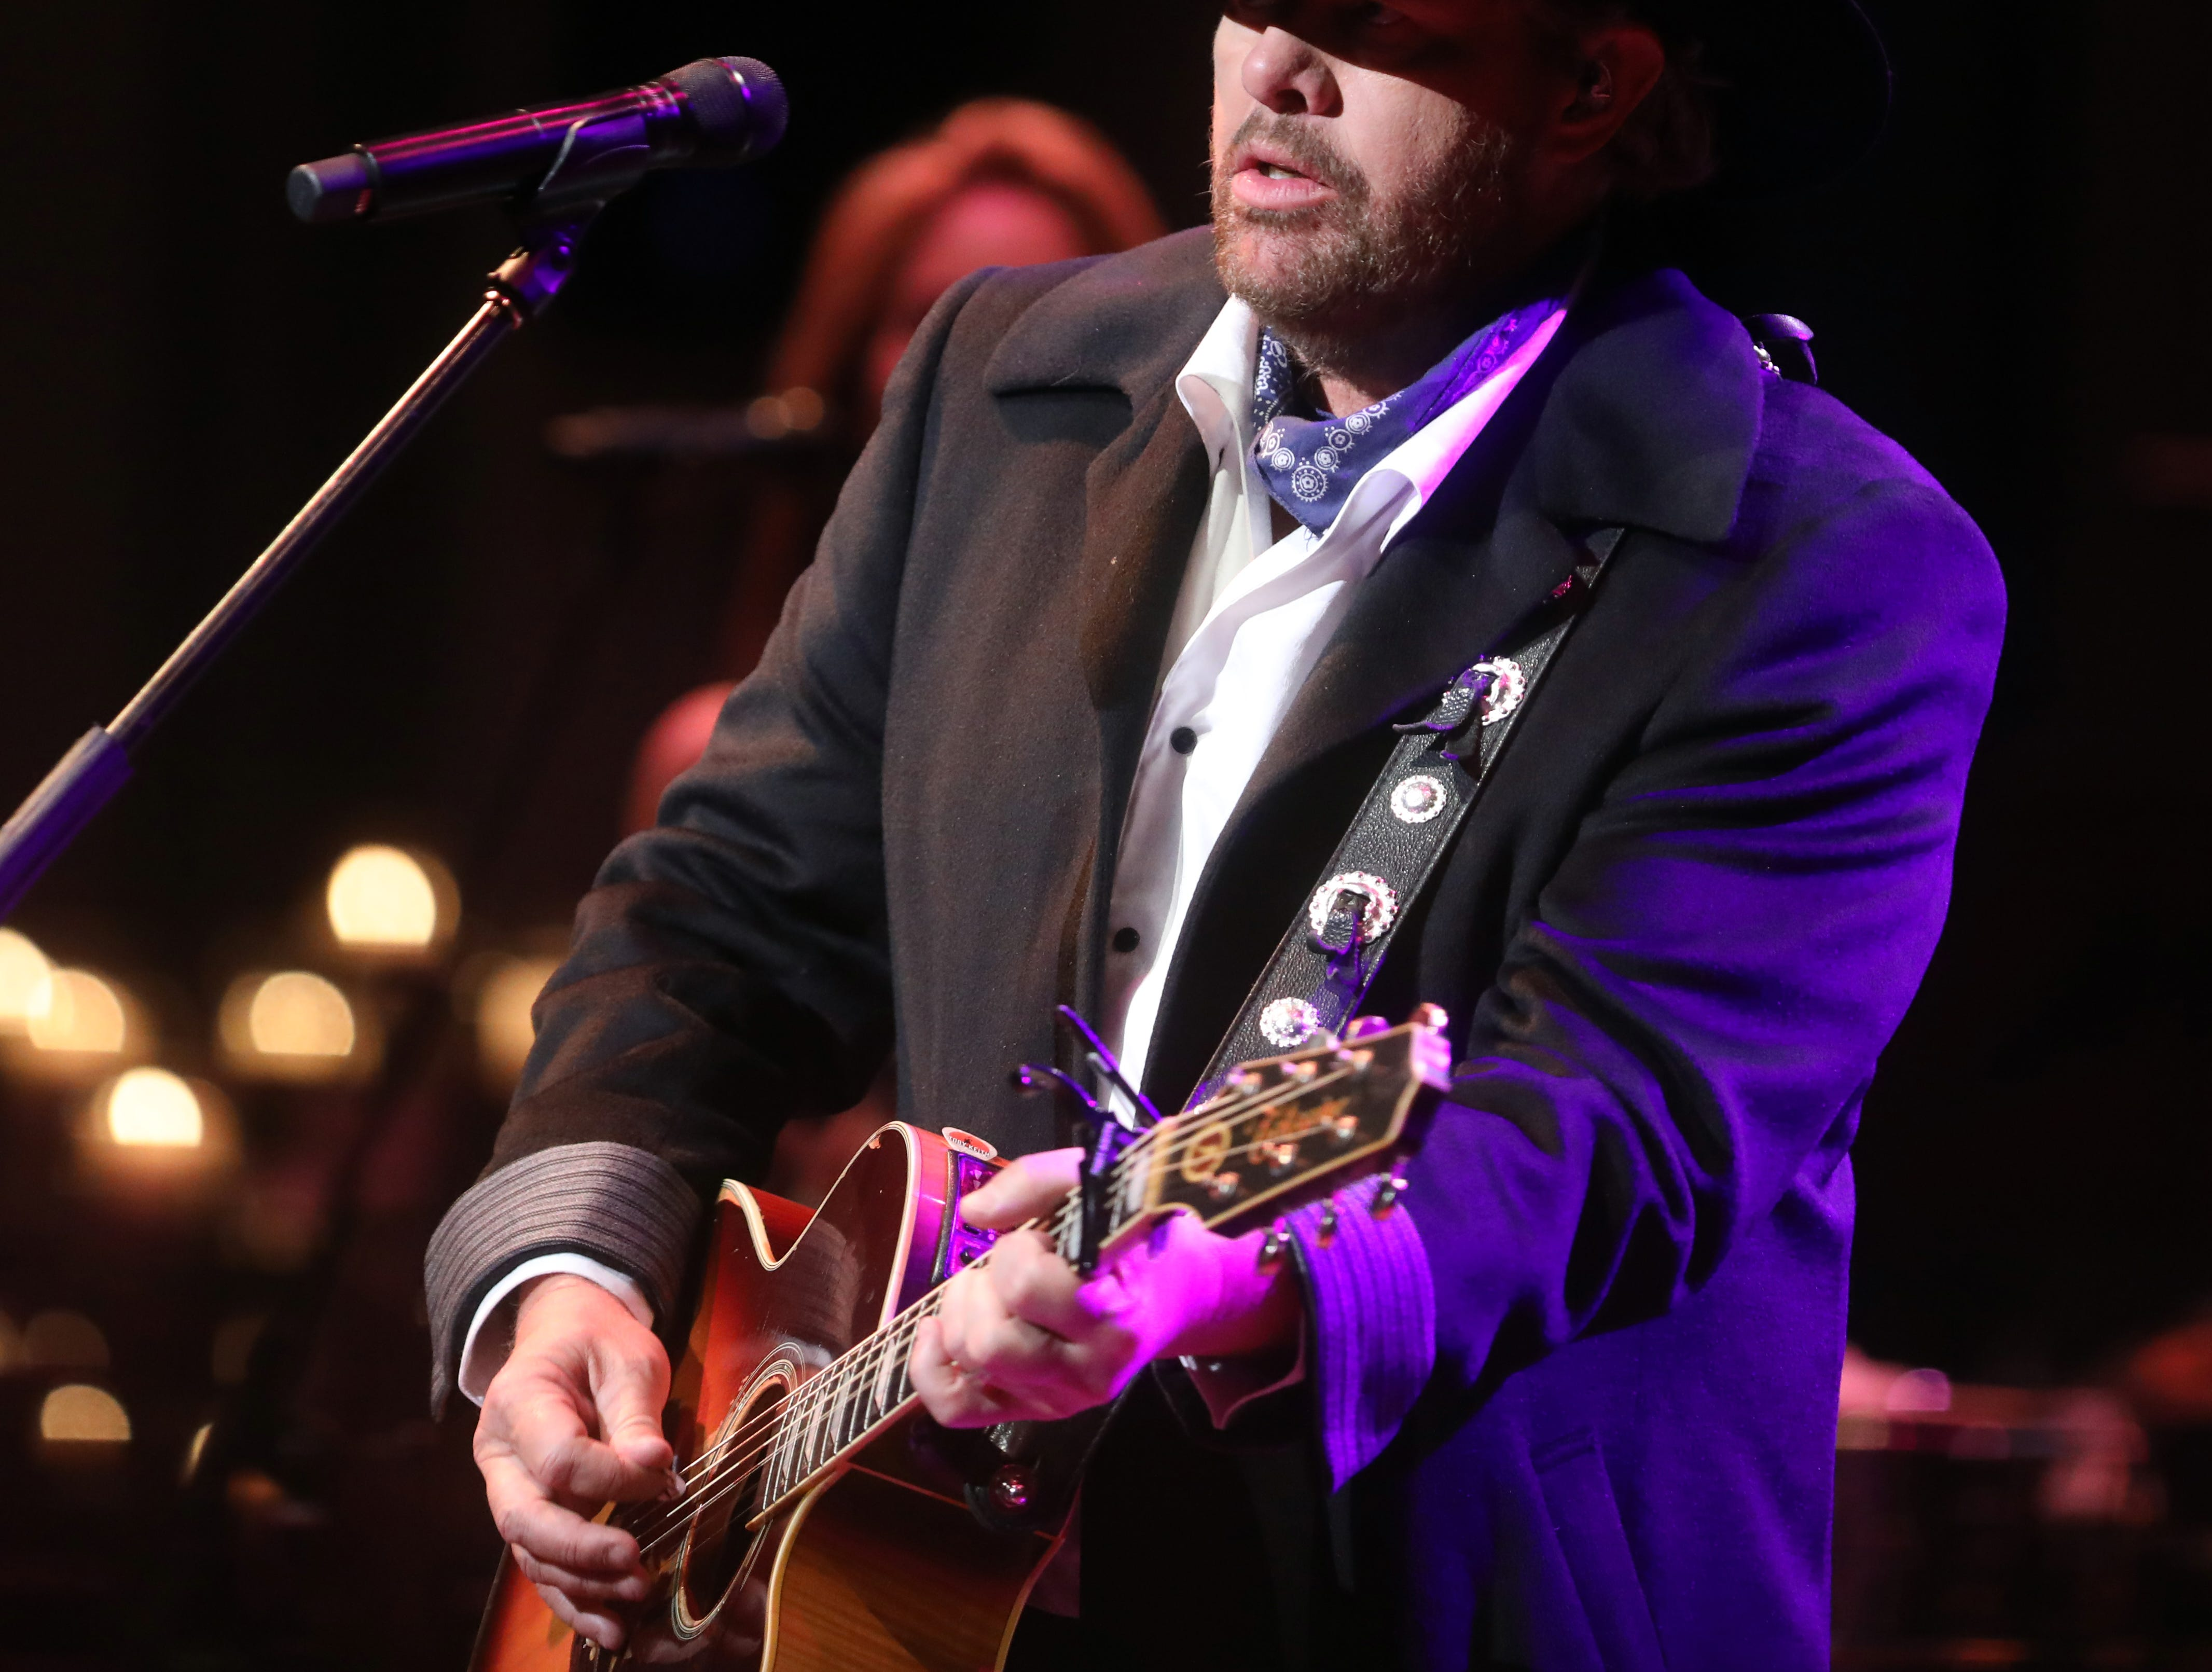 Toby Keith performs at the 34th annual Symphony Ball on Saturday, December 8, 2018, at Schermerhorn Symphony Center.